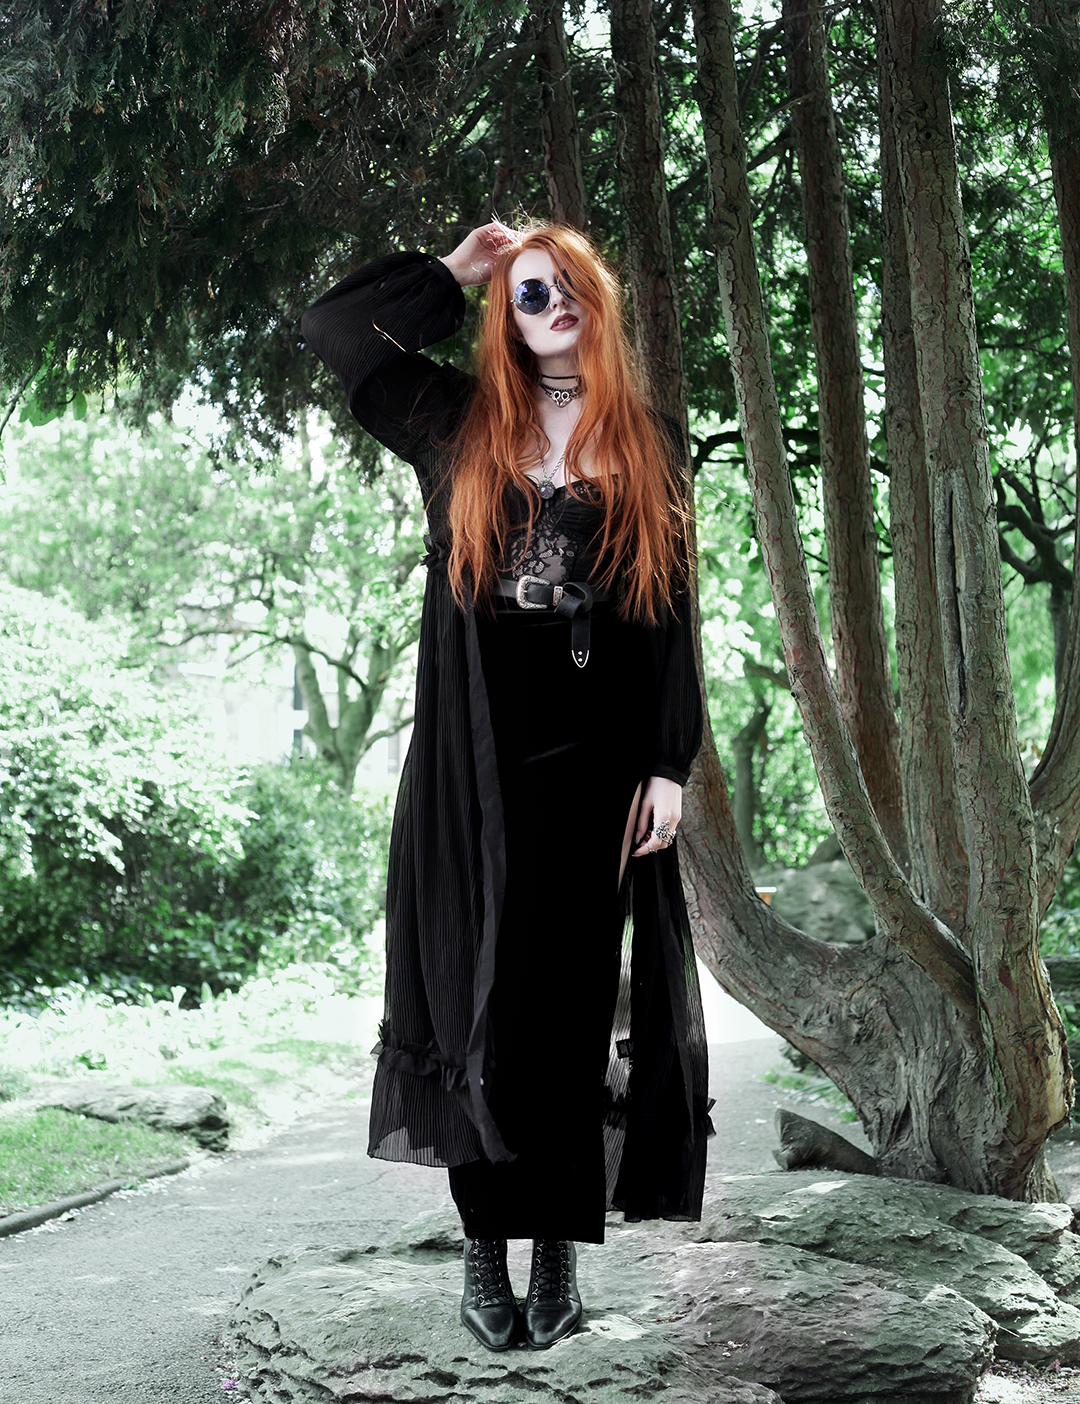 Seasonal Layers - Olivia Emily wears Topshop Sunglasses, Religion Maxi Dress, House of Widow Lace Baque, Asos Western Belt, Boohoo Velvet Maxi Skirt, Asos pointed Boots